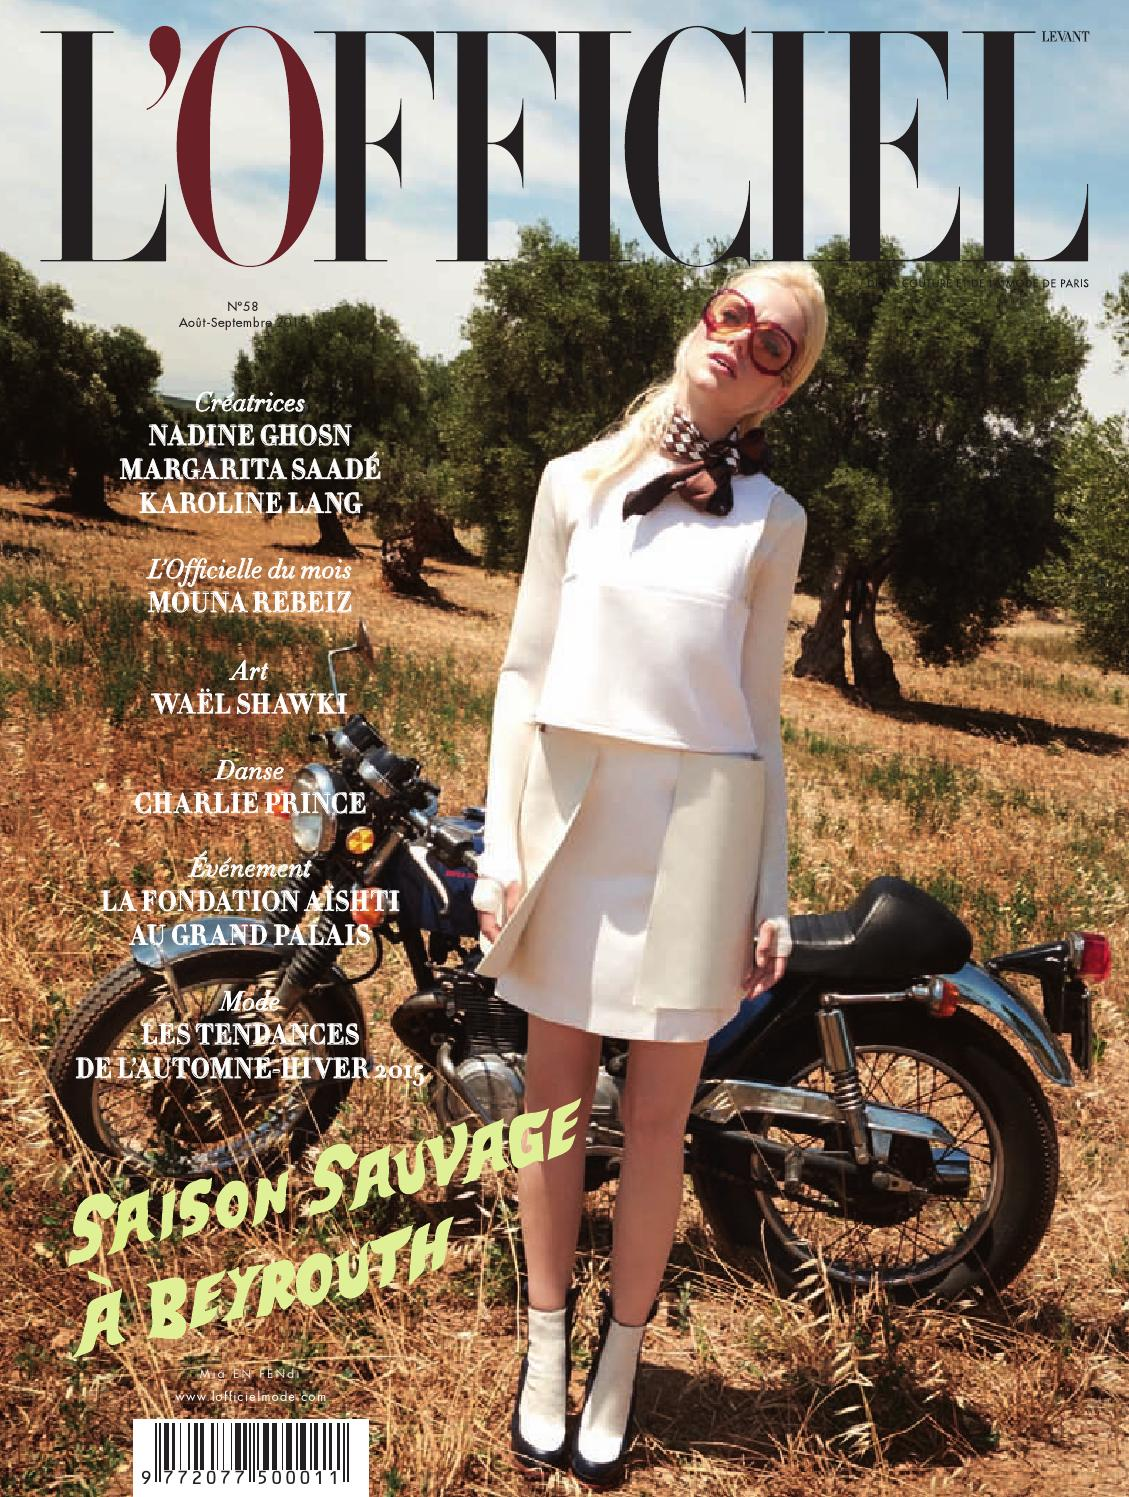 L Officiel-Levant, August September Issue 58 by L Officiel Levant - issuu 4558d7cea4c